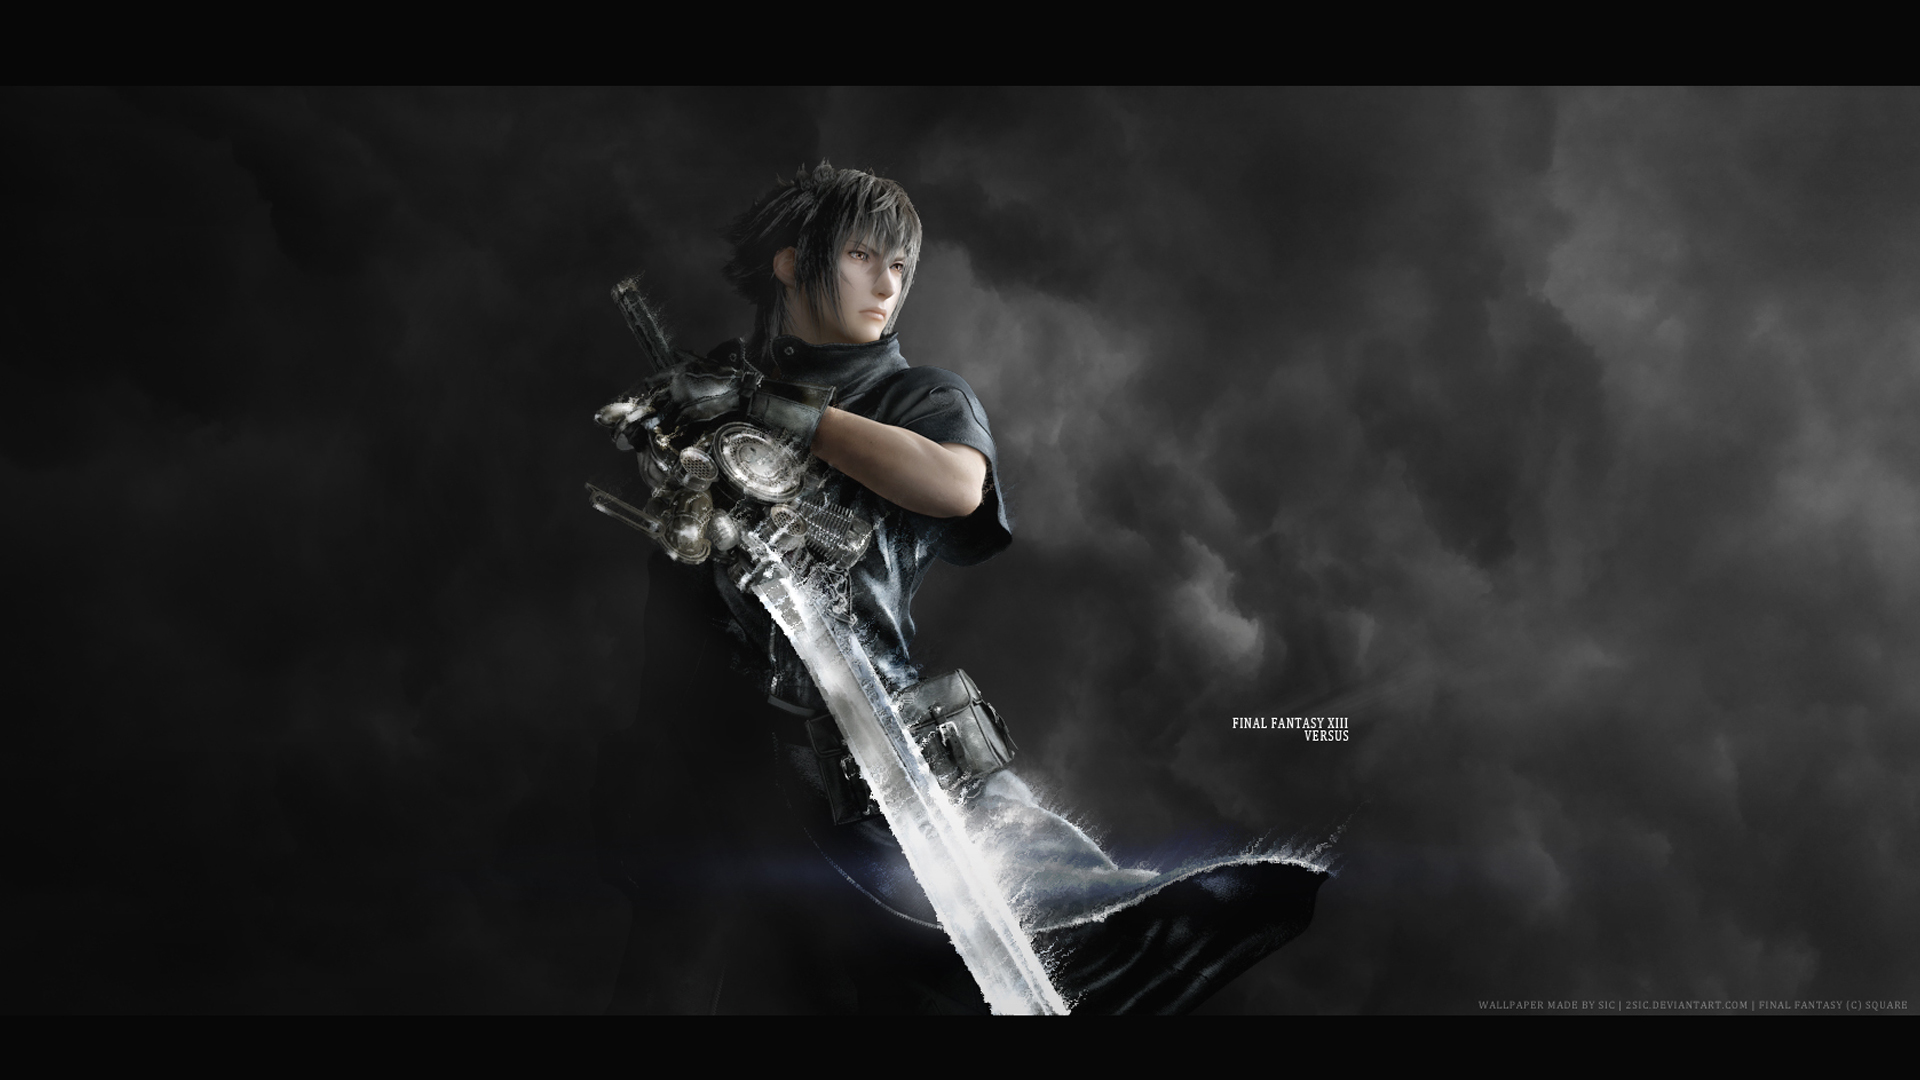 Final Fantasy Xv Wallpaper 78 Images: Final Fantasy XV Wallpaper